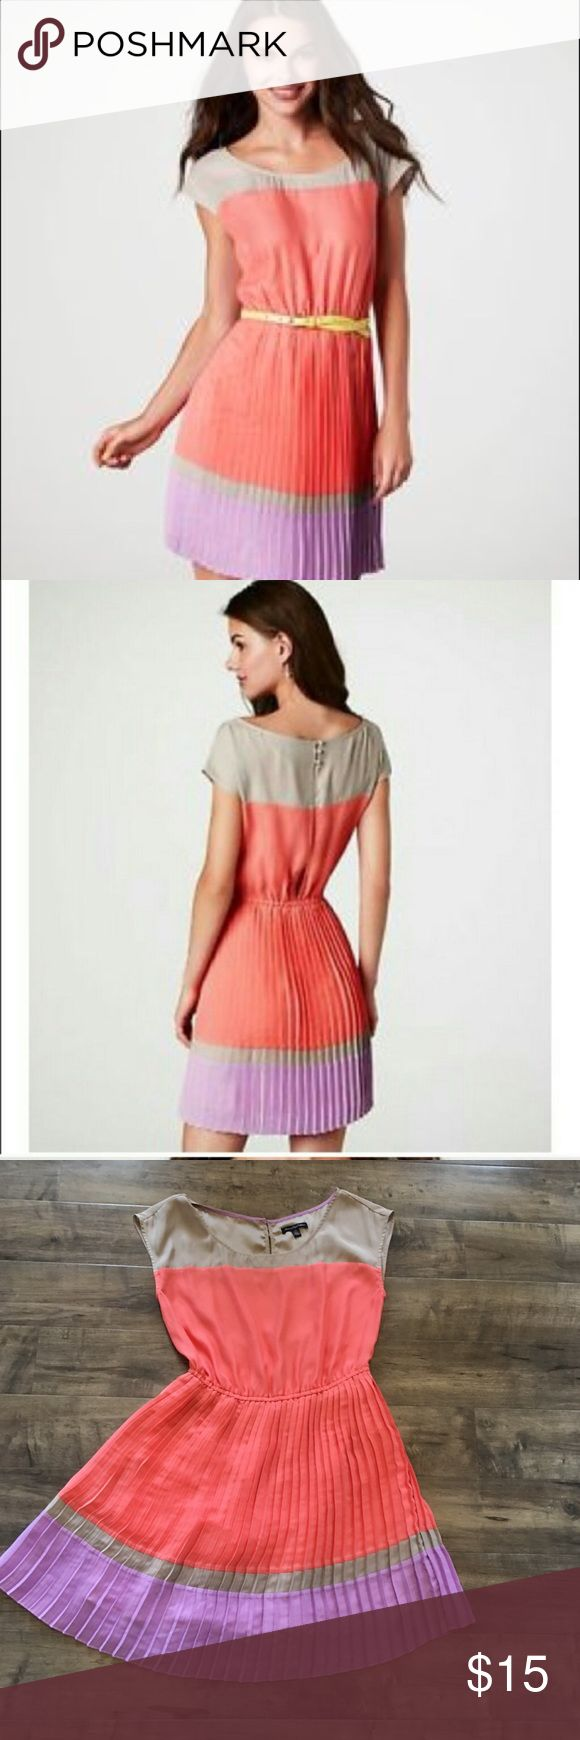 American Eagle color block pleated dress, sz med Cute American Eagle dress. The skirt is pleated. The back has a slit so it is an open back. It was only worn a couple times and is in excellent condition. Size medium. American Eagle Outfitters Dresses